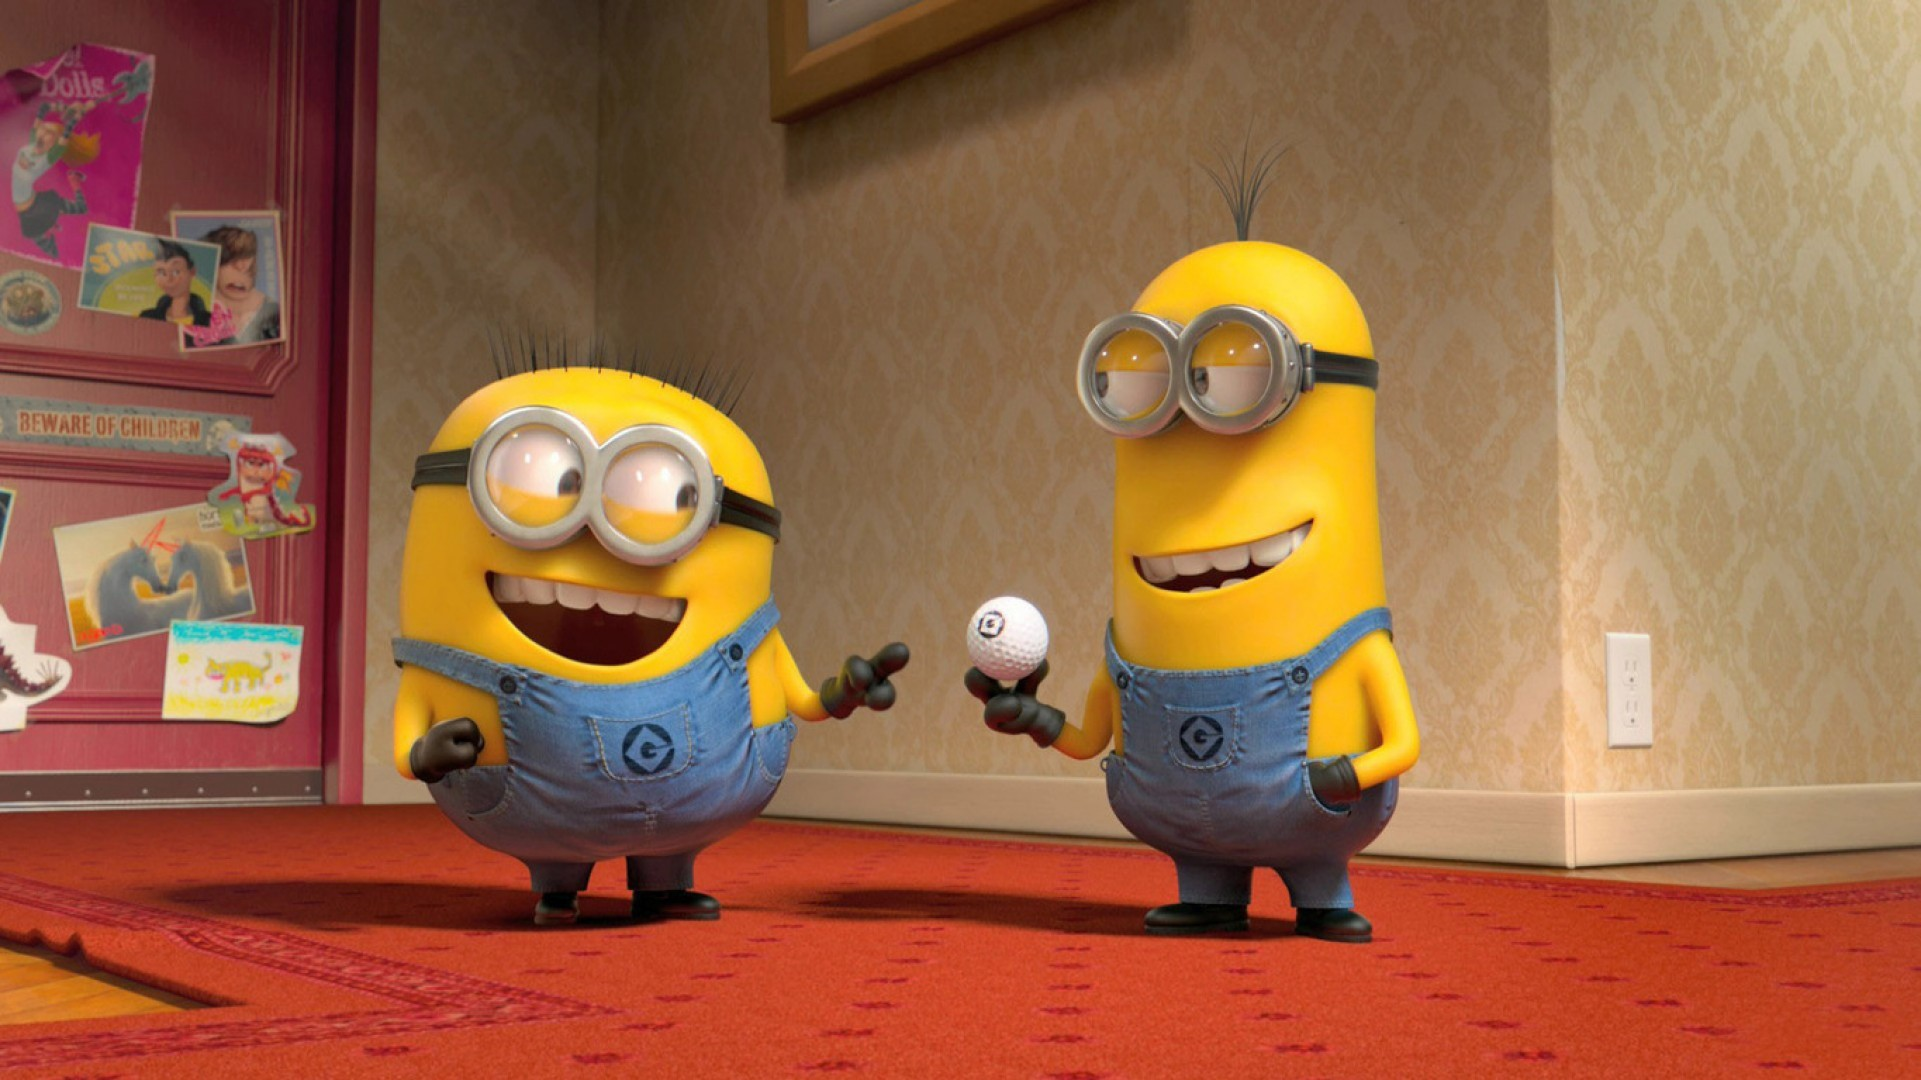 Minions Windows 8 wallpaper hd 1080p1920x1080 HD Desktop Wallpaper 1921x1080